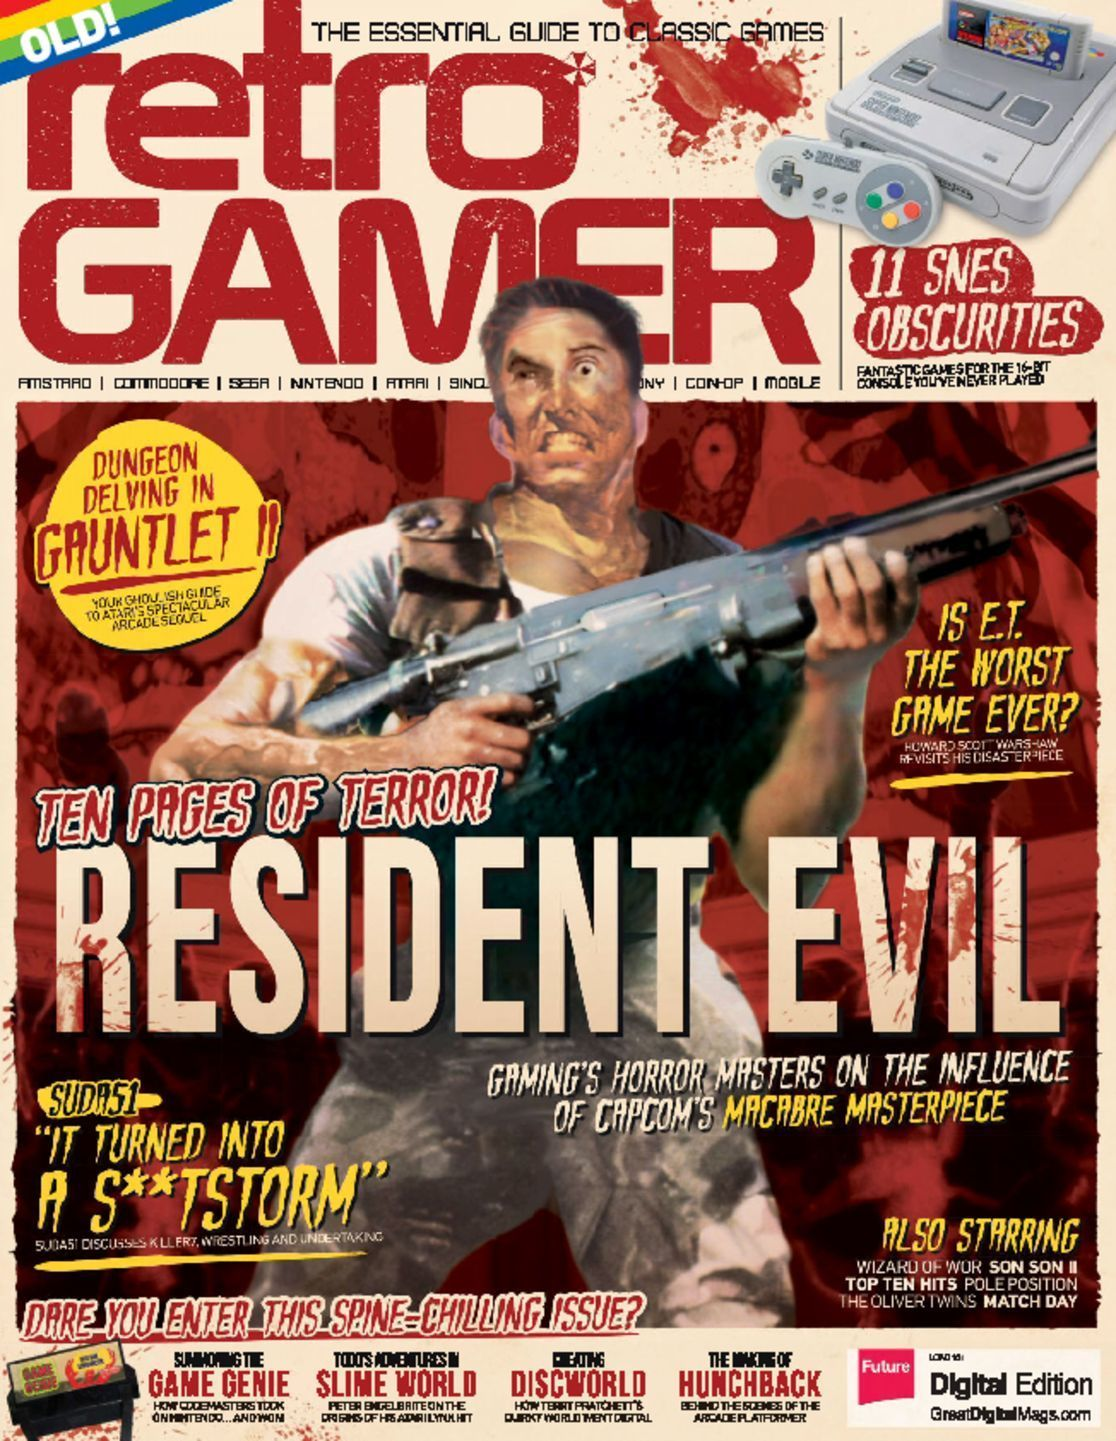 Retro Gamer Magazine (Digital) | Magazine Ideas | Retro gamer, Game